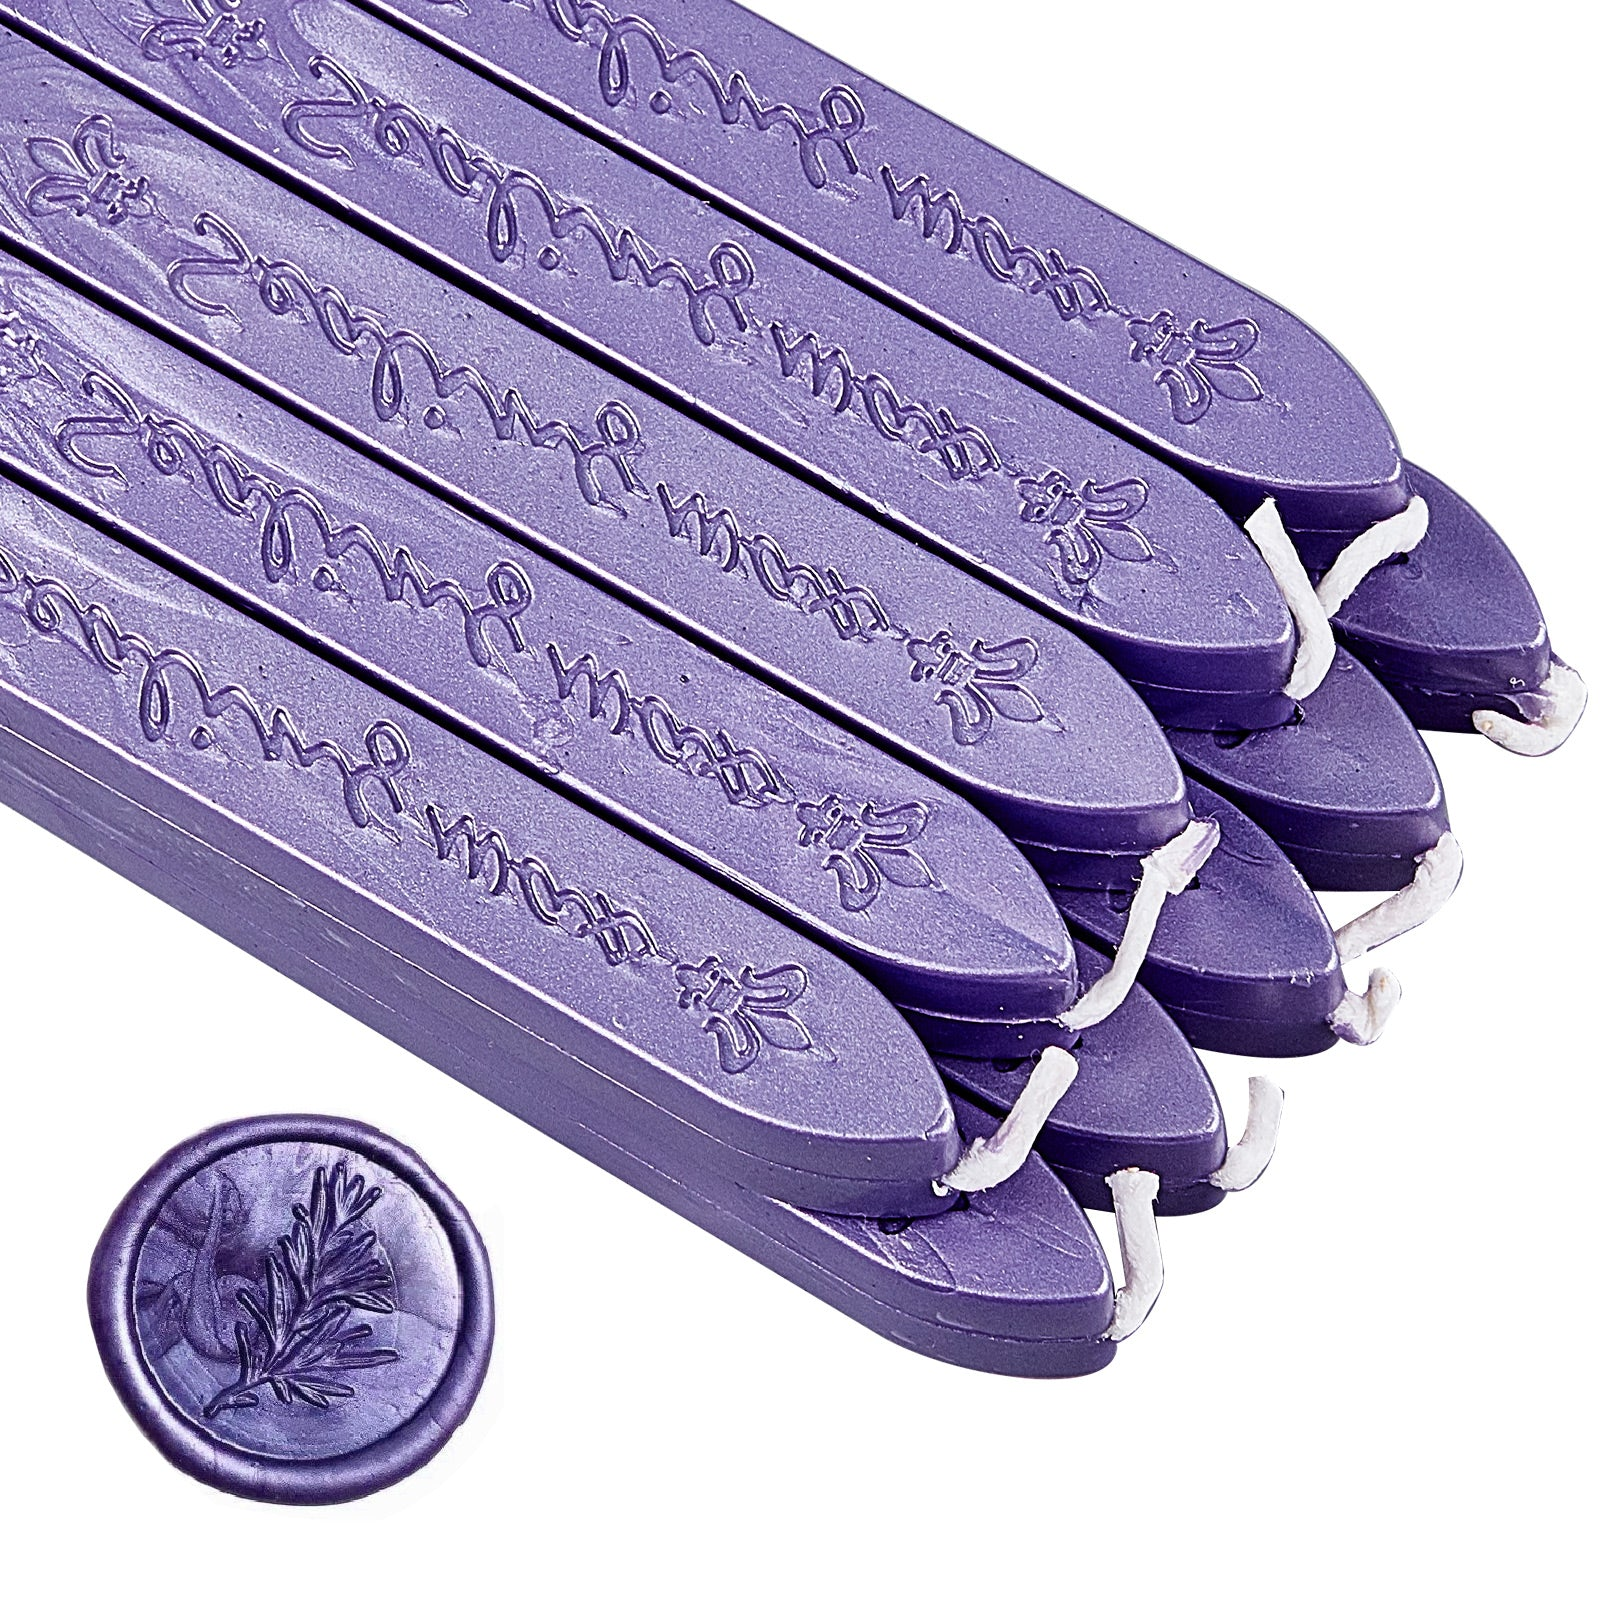 20 Pieces Sealing Wax Sticks with Wicks(Pearl Purple)